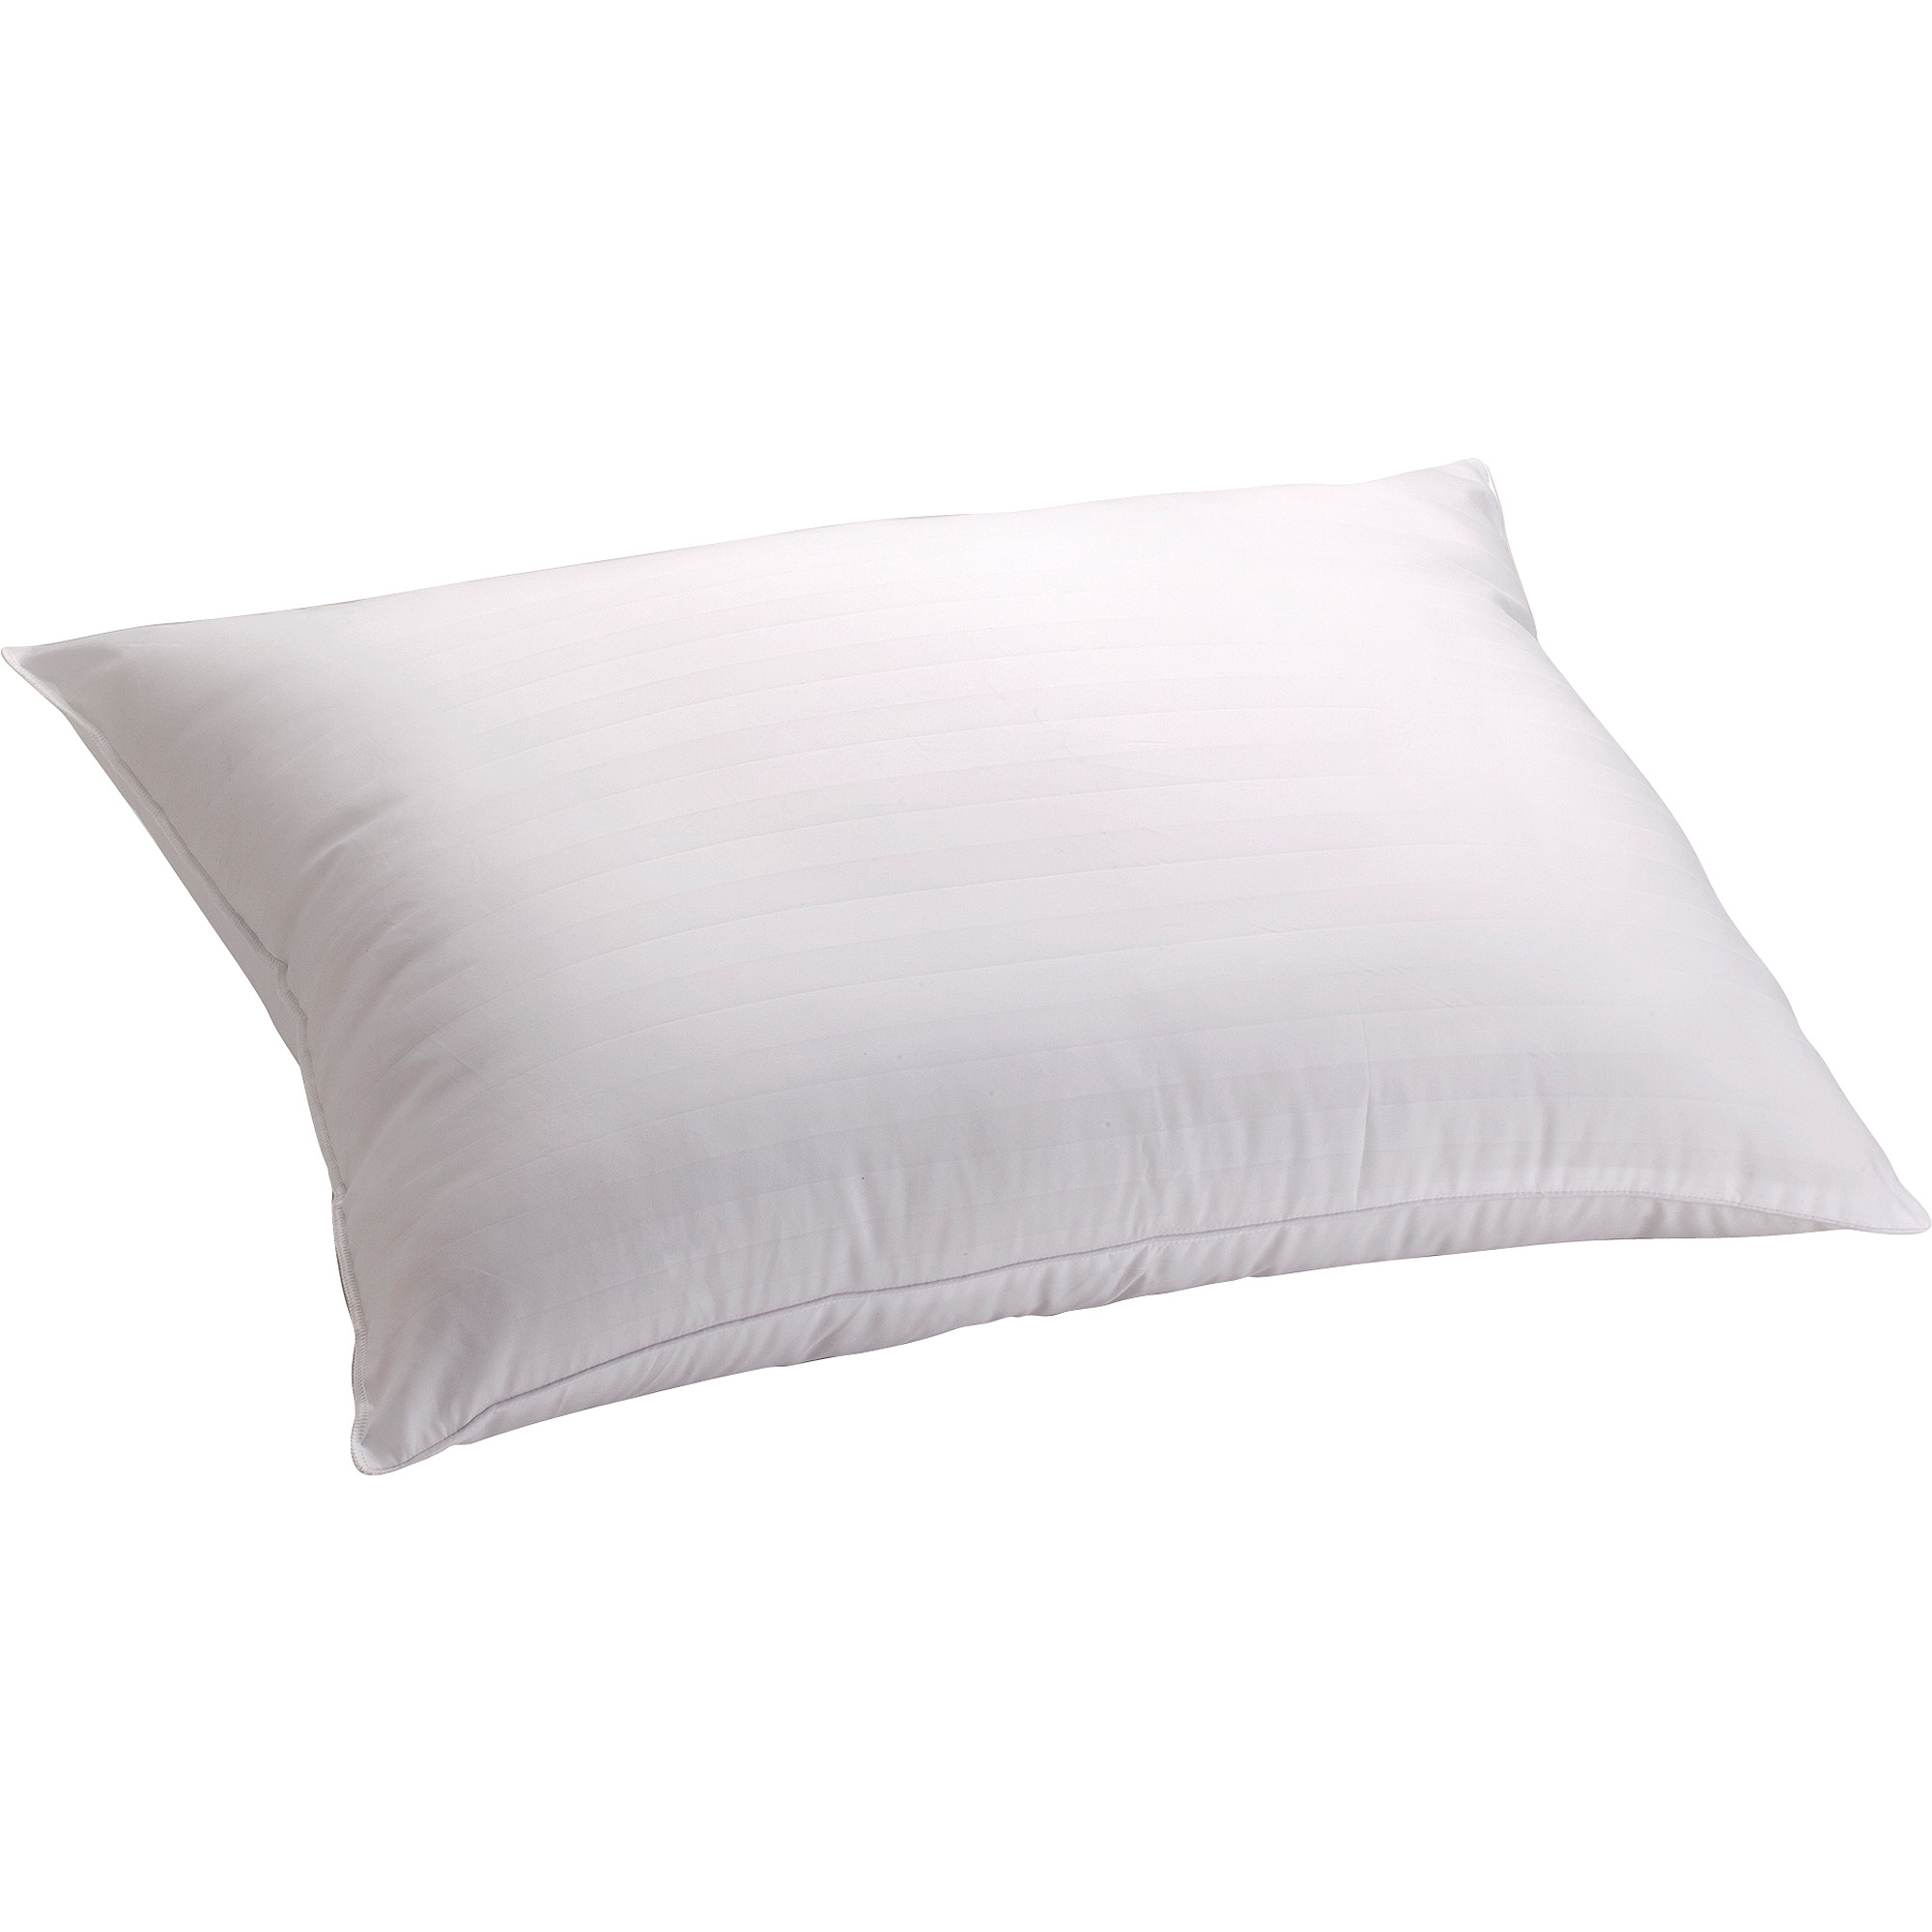 mainstays 100 cotton striped zippered pillow protector